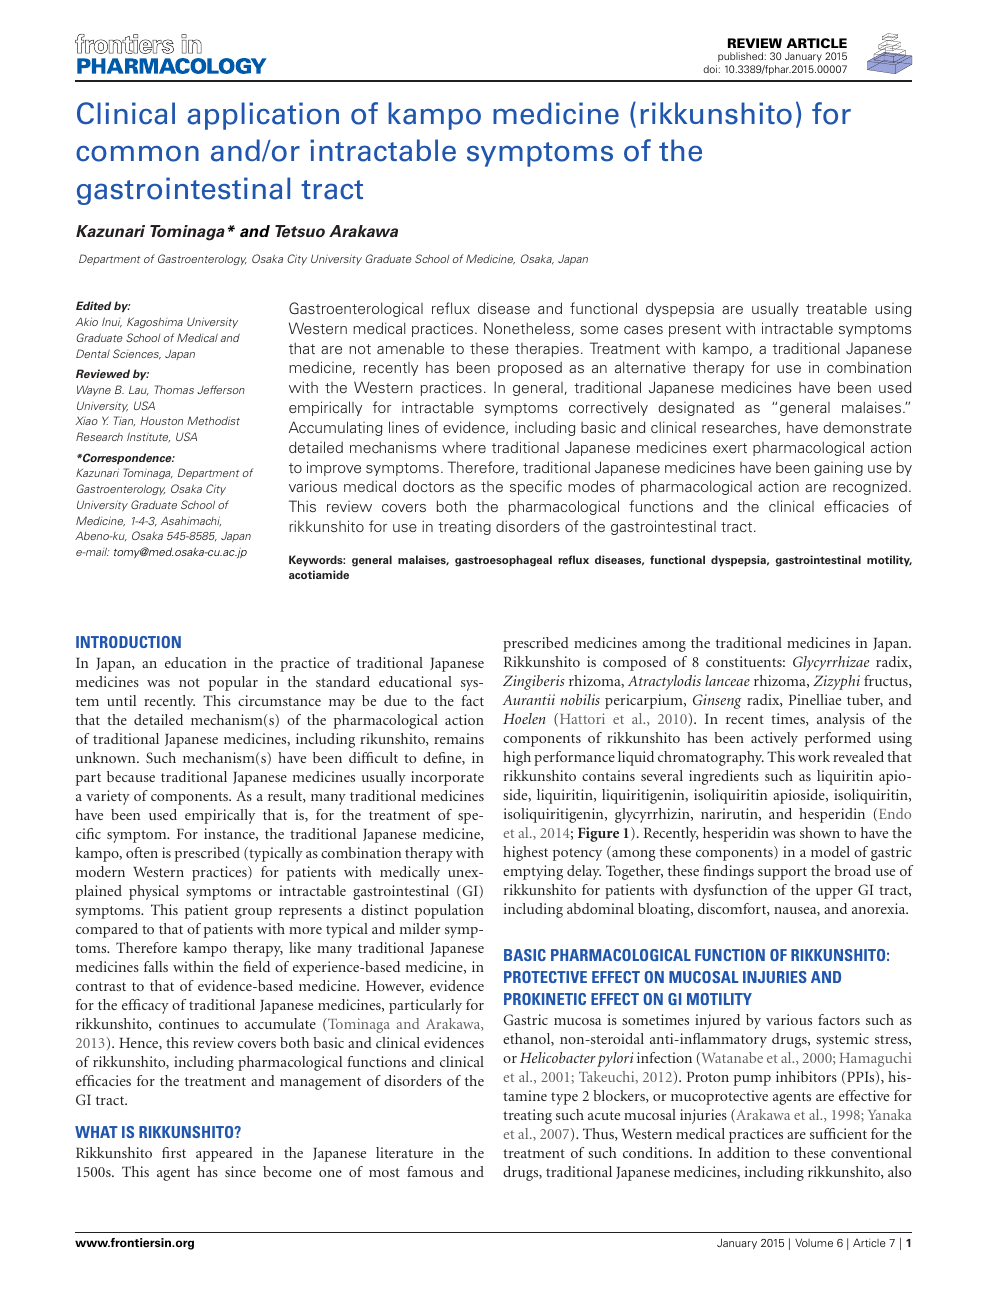 Clinical application of kampo medicine (rikkunshito) for common and